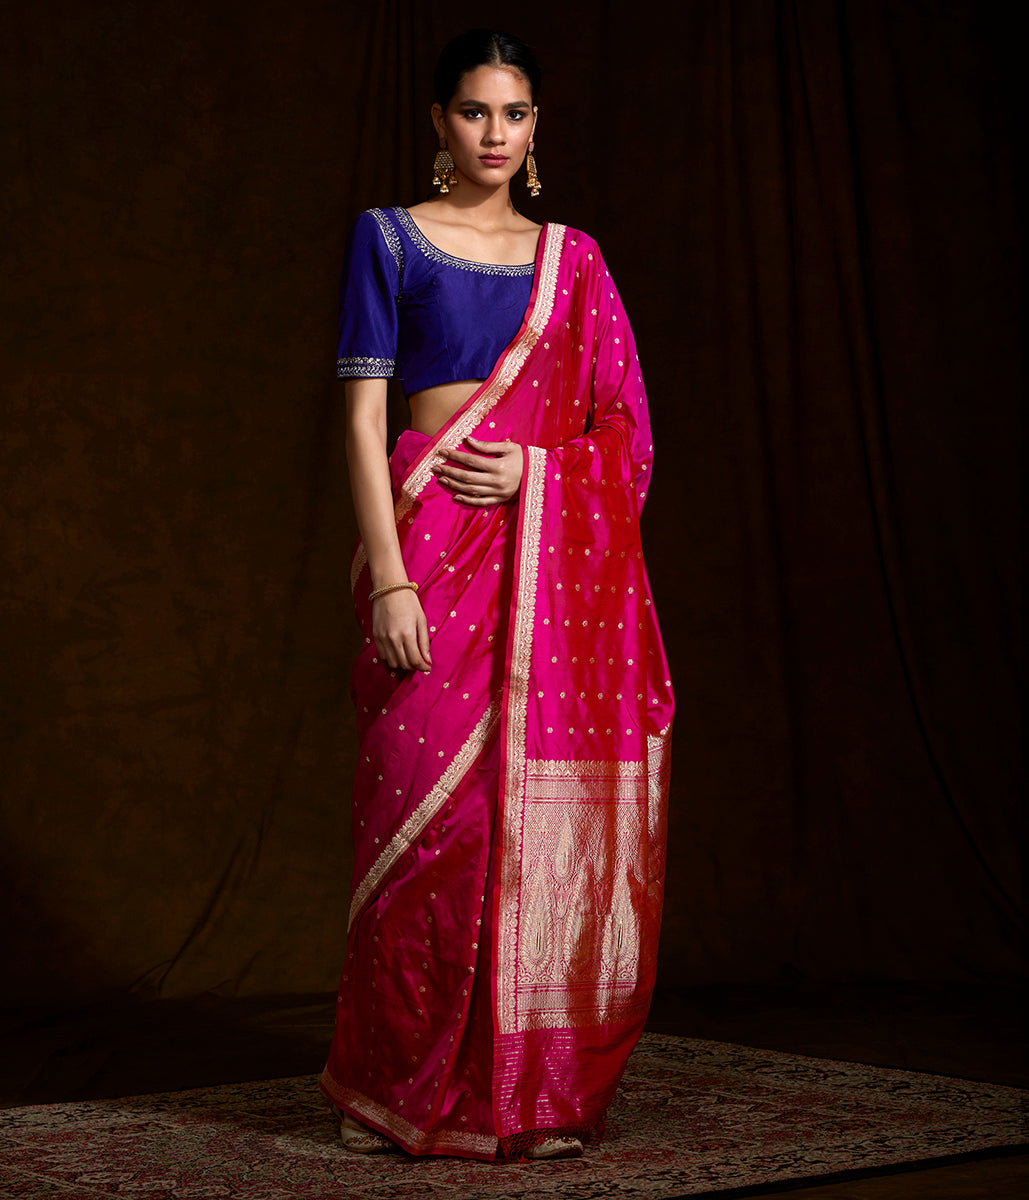 Hot Pink katan silk saree with small floral motifs and a delicate kadhwa border